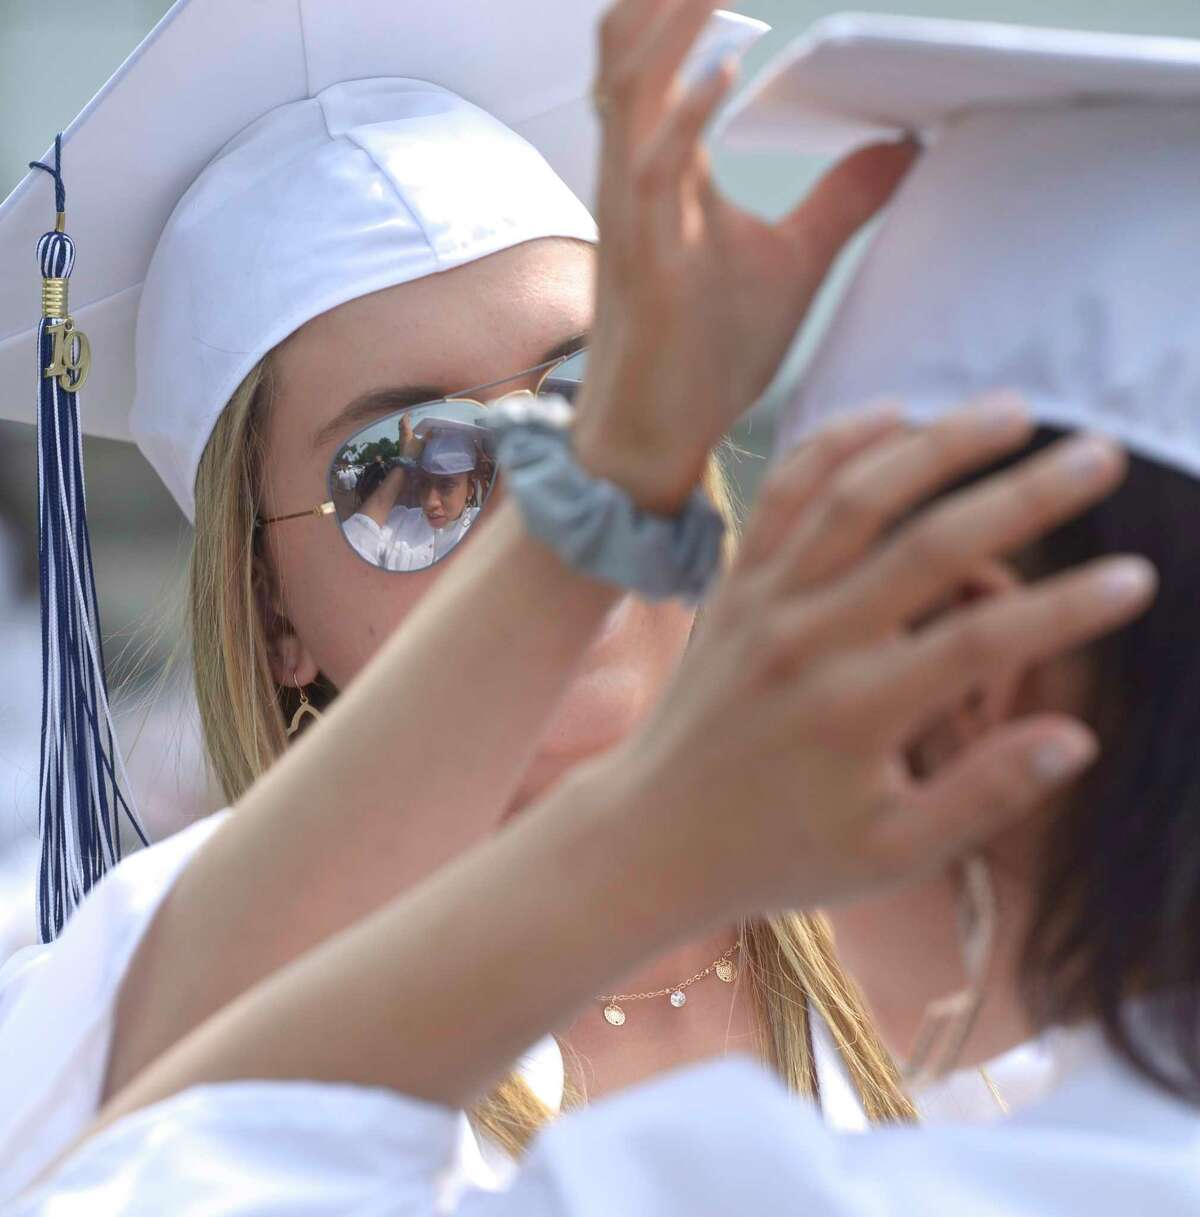 Vanesa Katherine Roma, of Danbury, adjusts the cap of Jessica Dennison, of Danbury, before the Immaculate High School 2019 Commencement. Saturday, June 1, 2019, at the Western Connecticut State University O'Neill Center, Danbury, Conn.